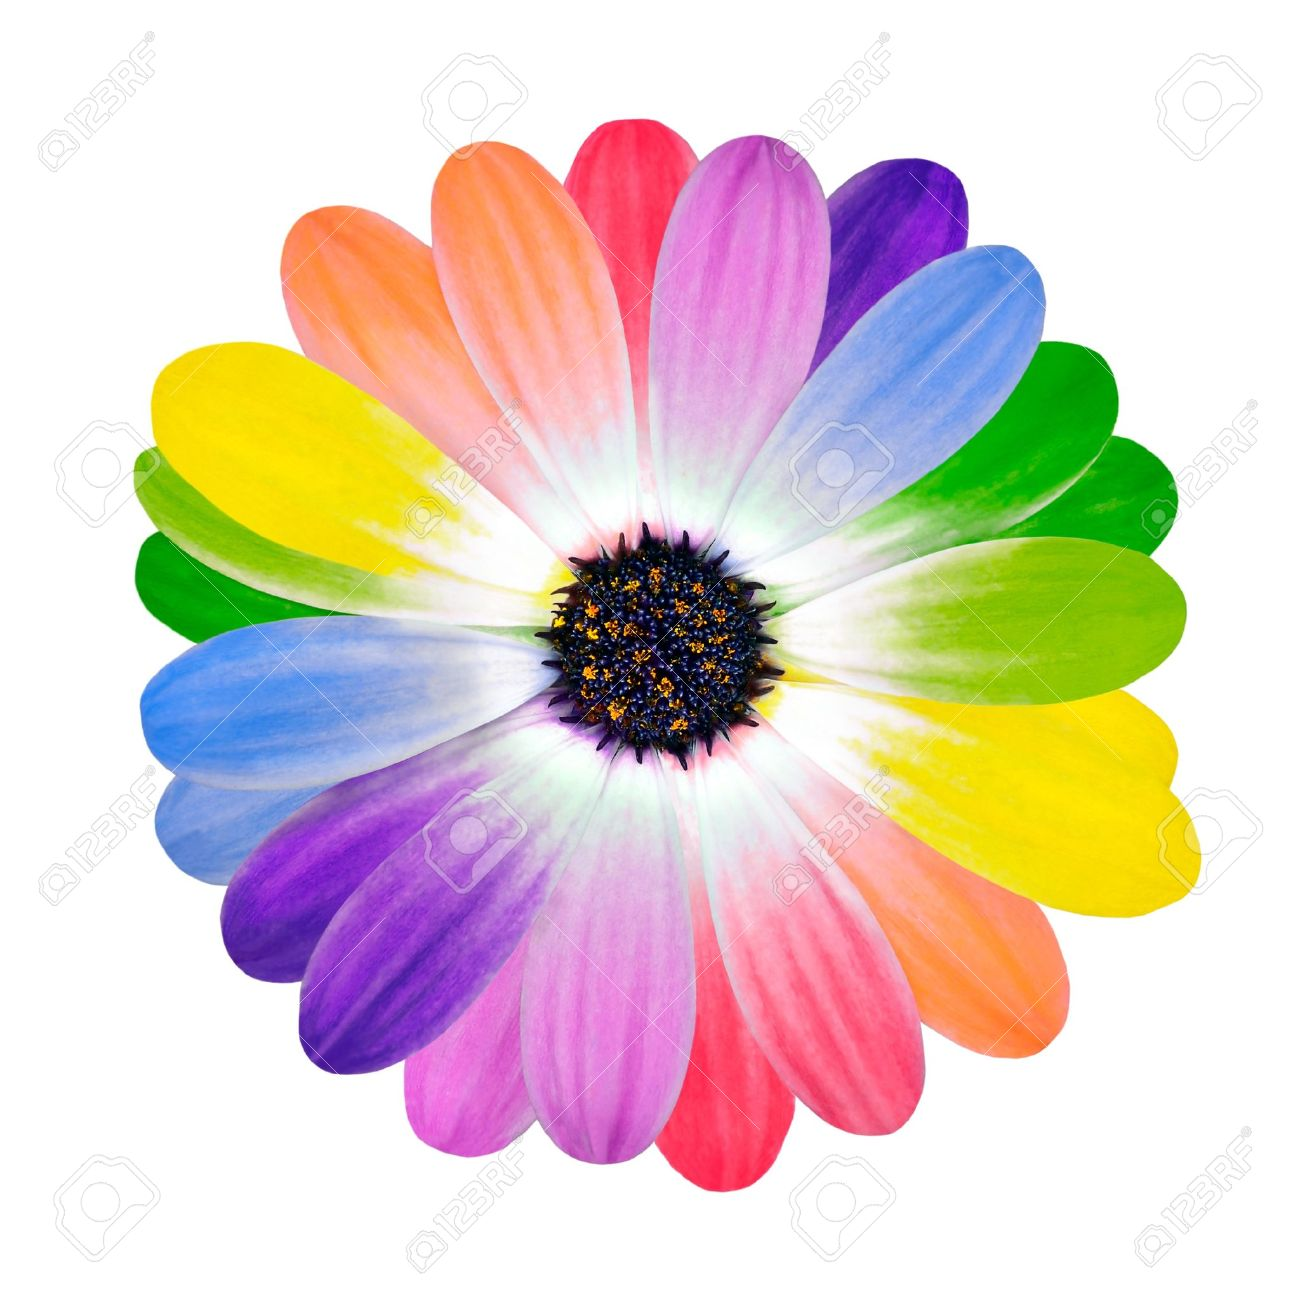 rainbow flower multi colored petals of daisy flower isolated, Beautiful flower